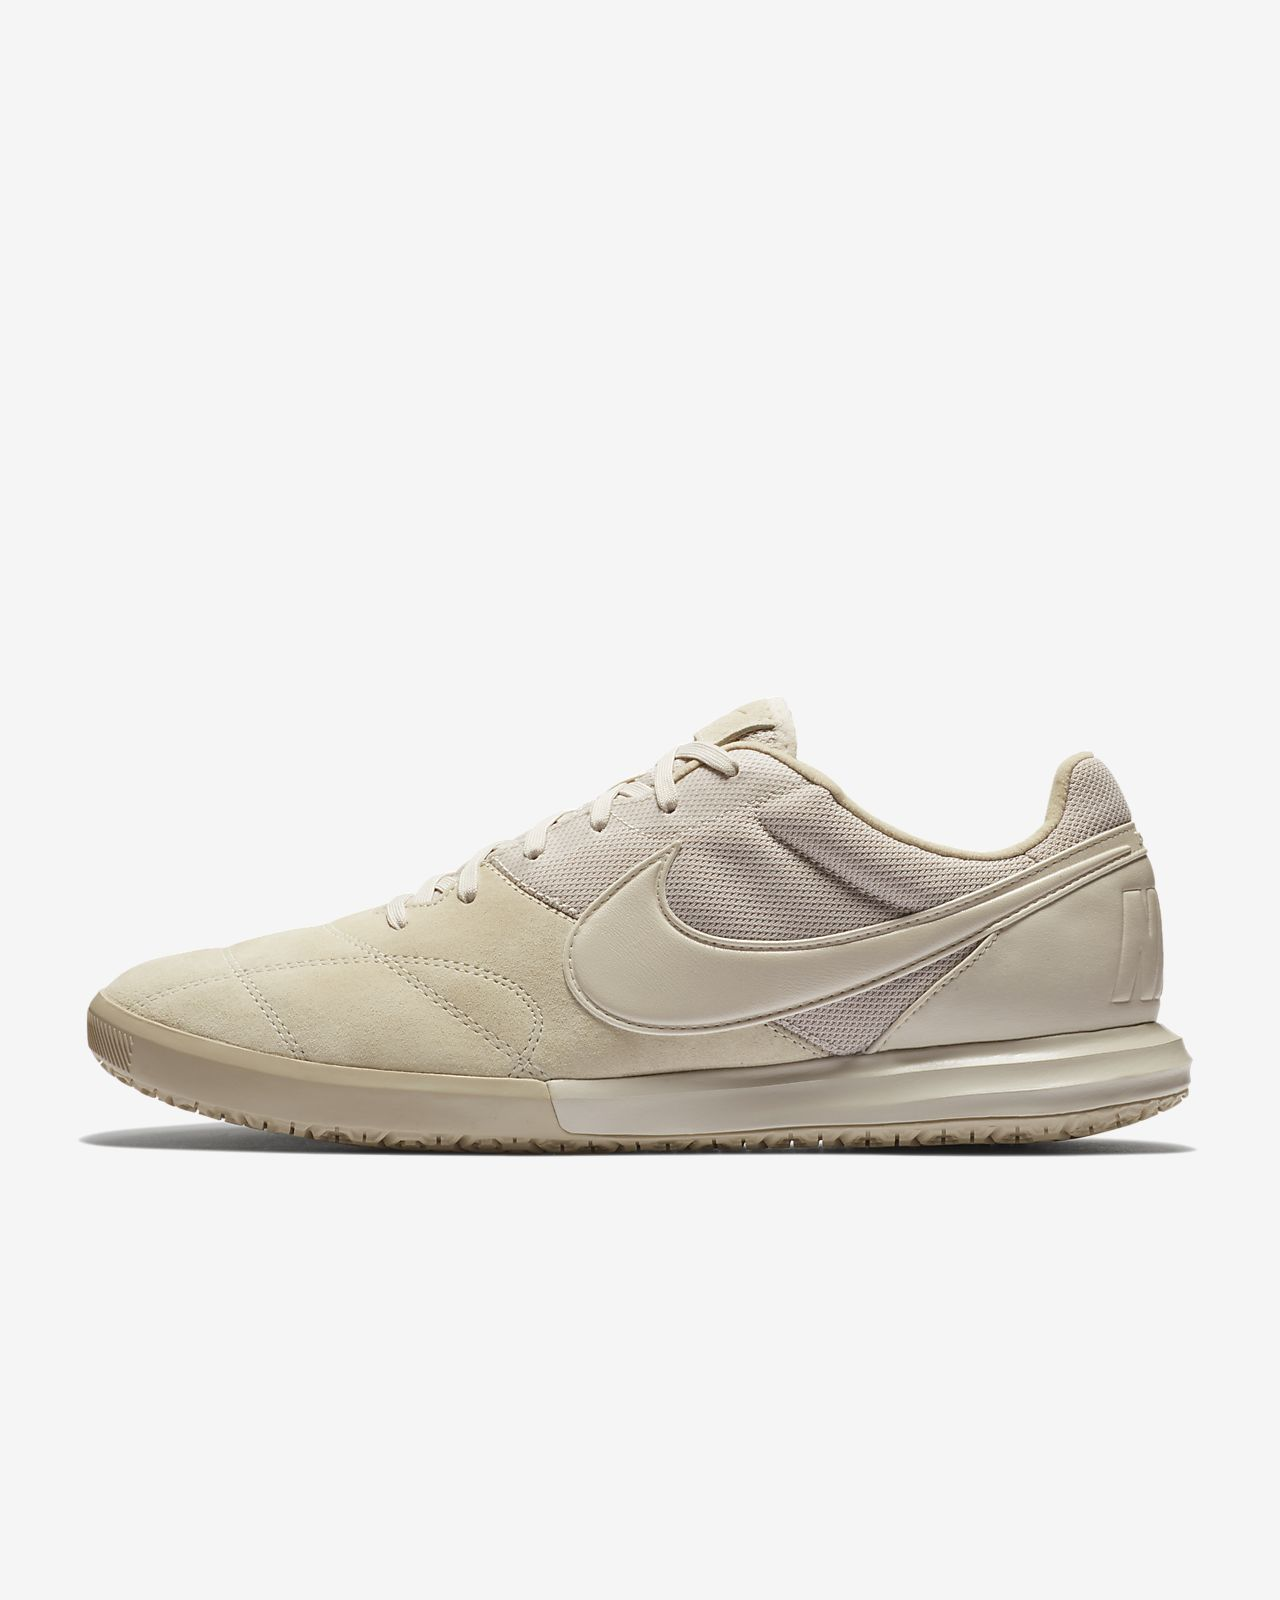 online store f01aa f4a94 ... shoes for women  tiempo premier id Nike sb good skating. And who are .